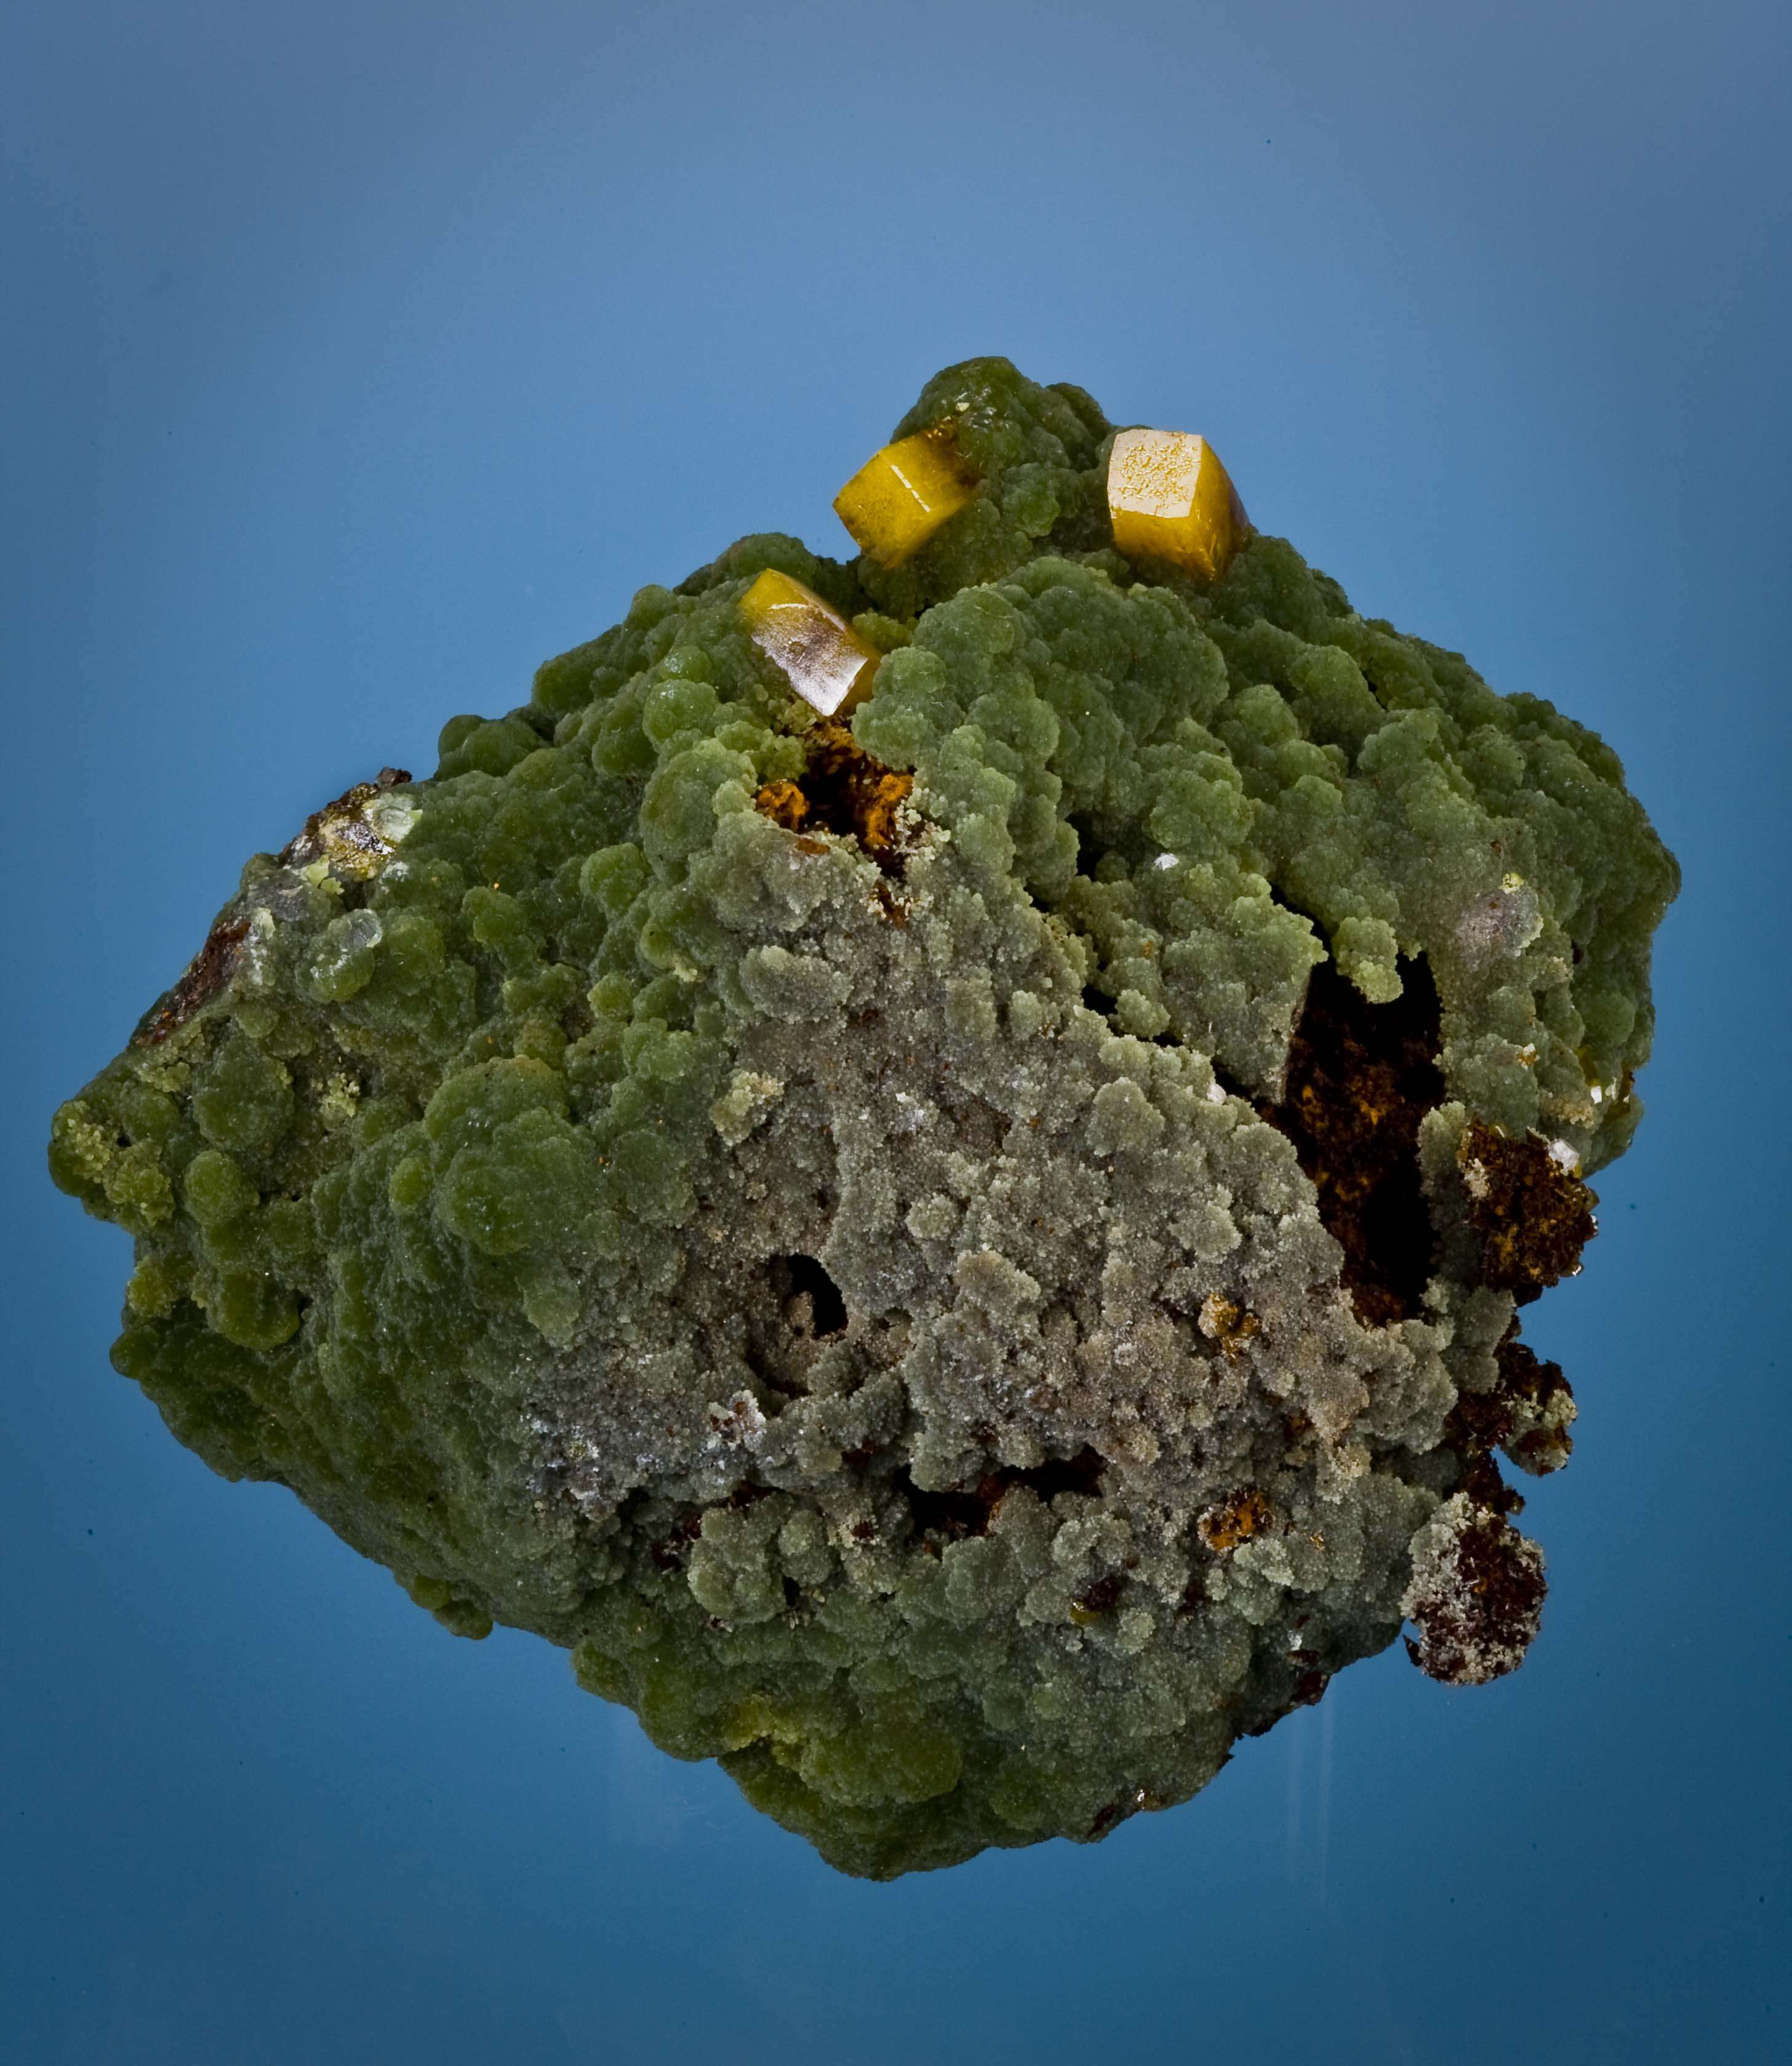 A 3 dimensional crust silky rich green mimetite 6 cm completely covers